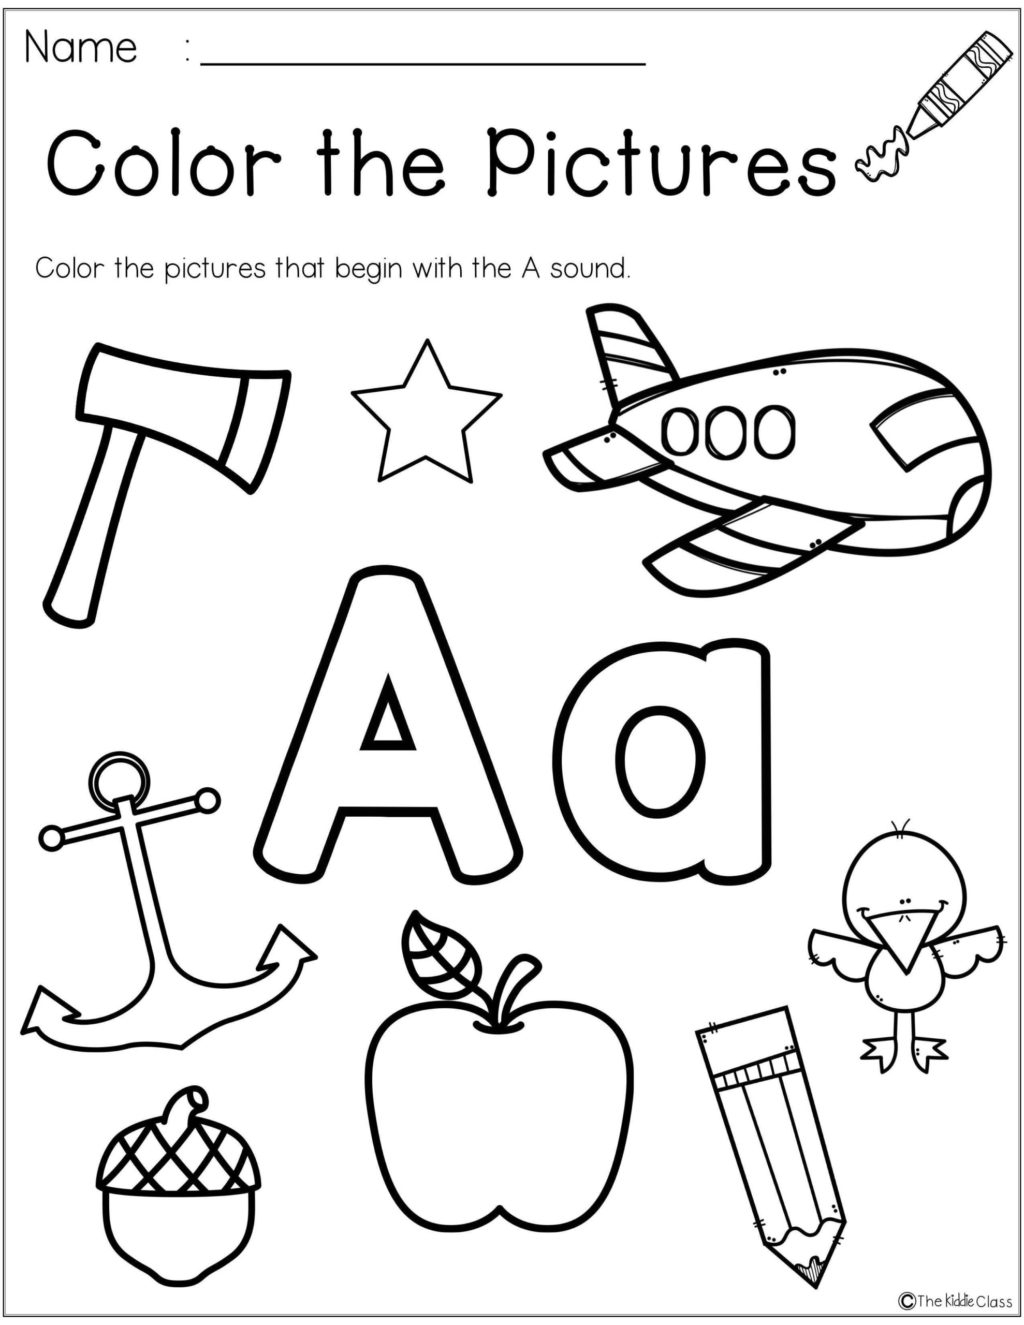 Worksheet ~ Letterts Confusing Words In English Exercises with Letter A Worksheets Pdf